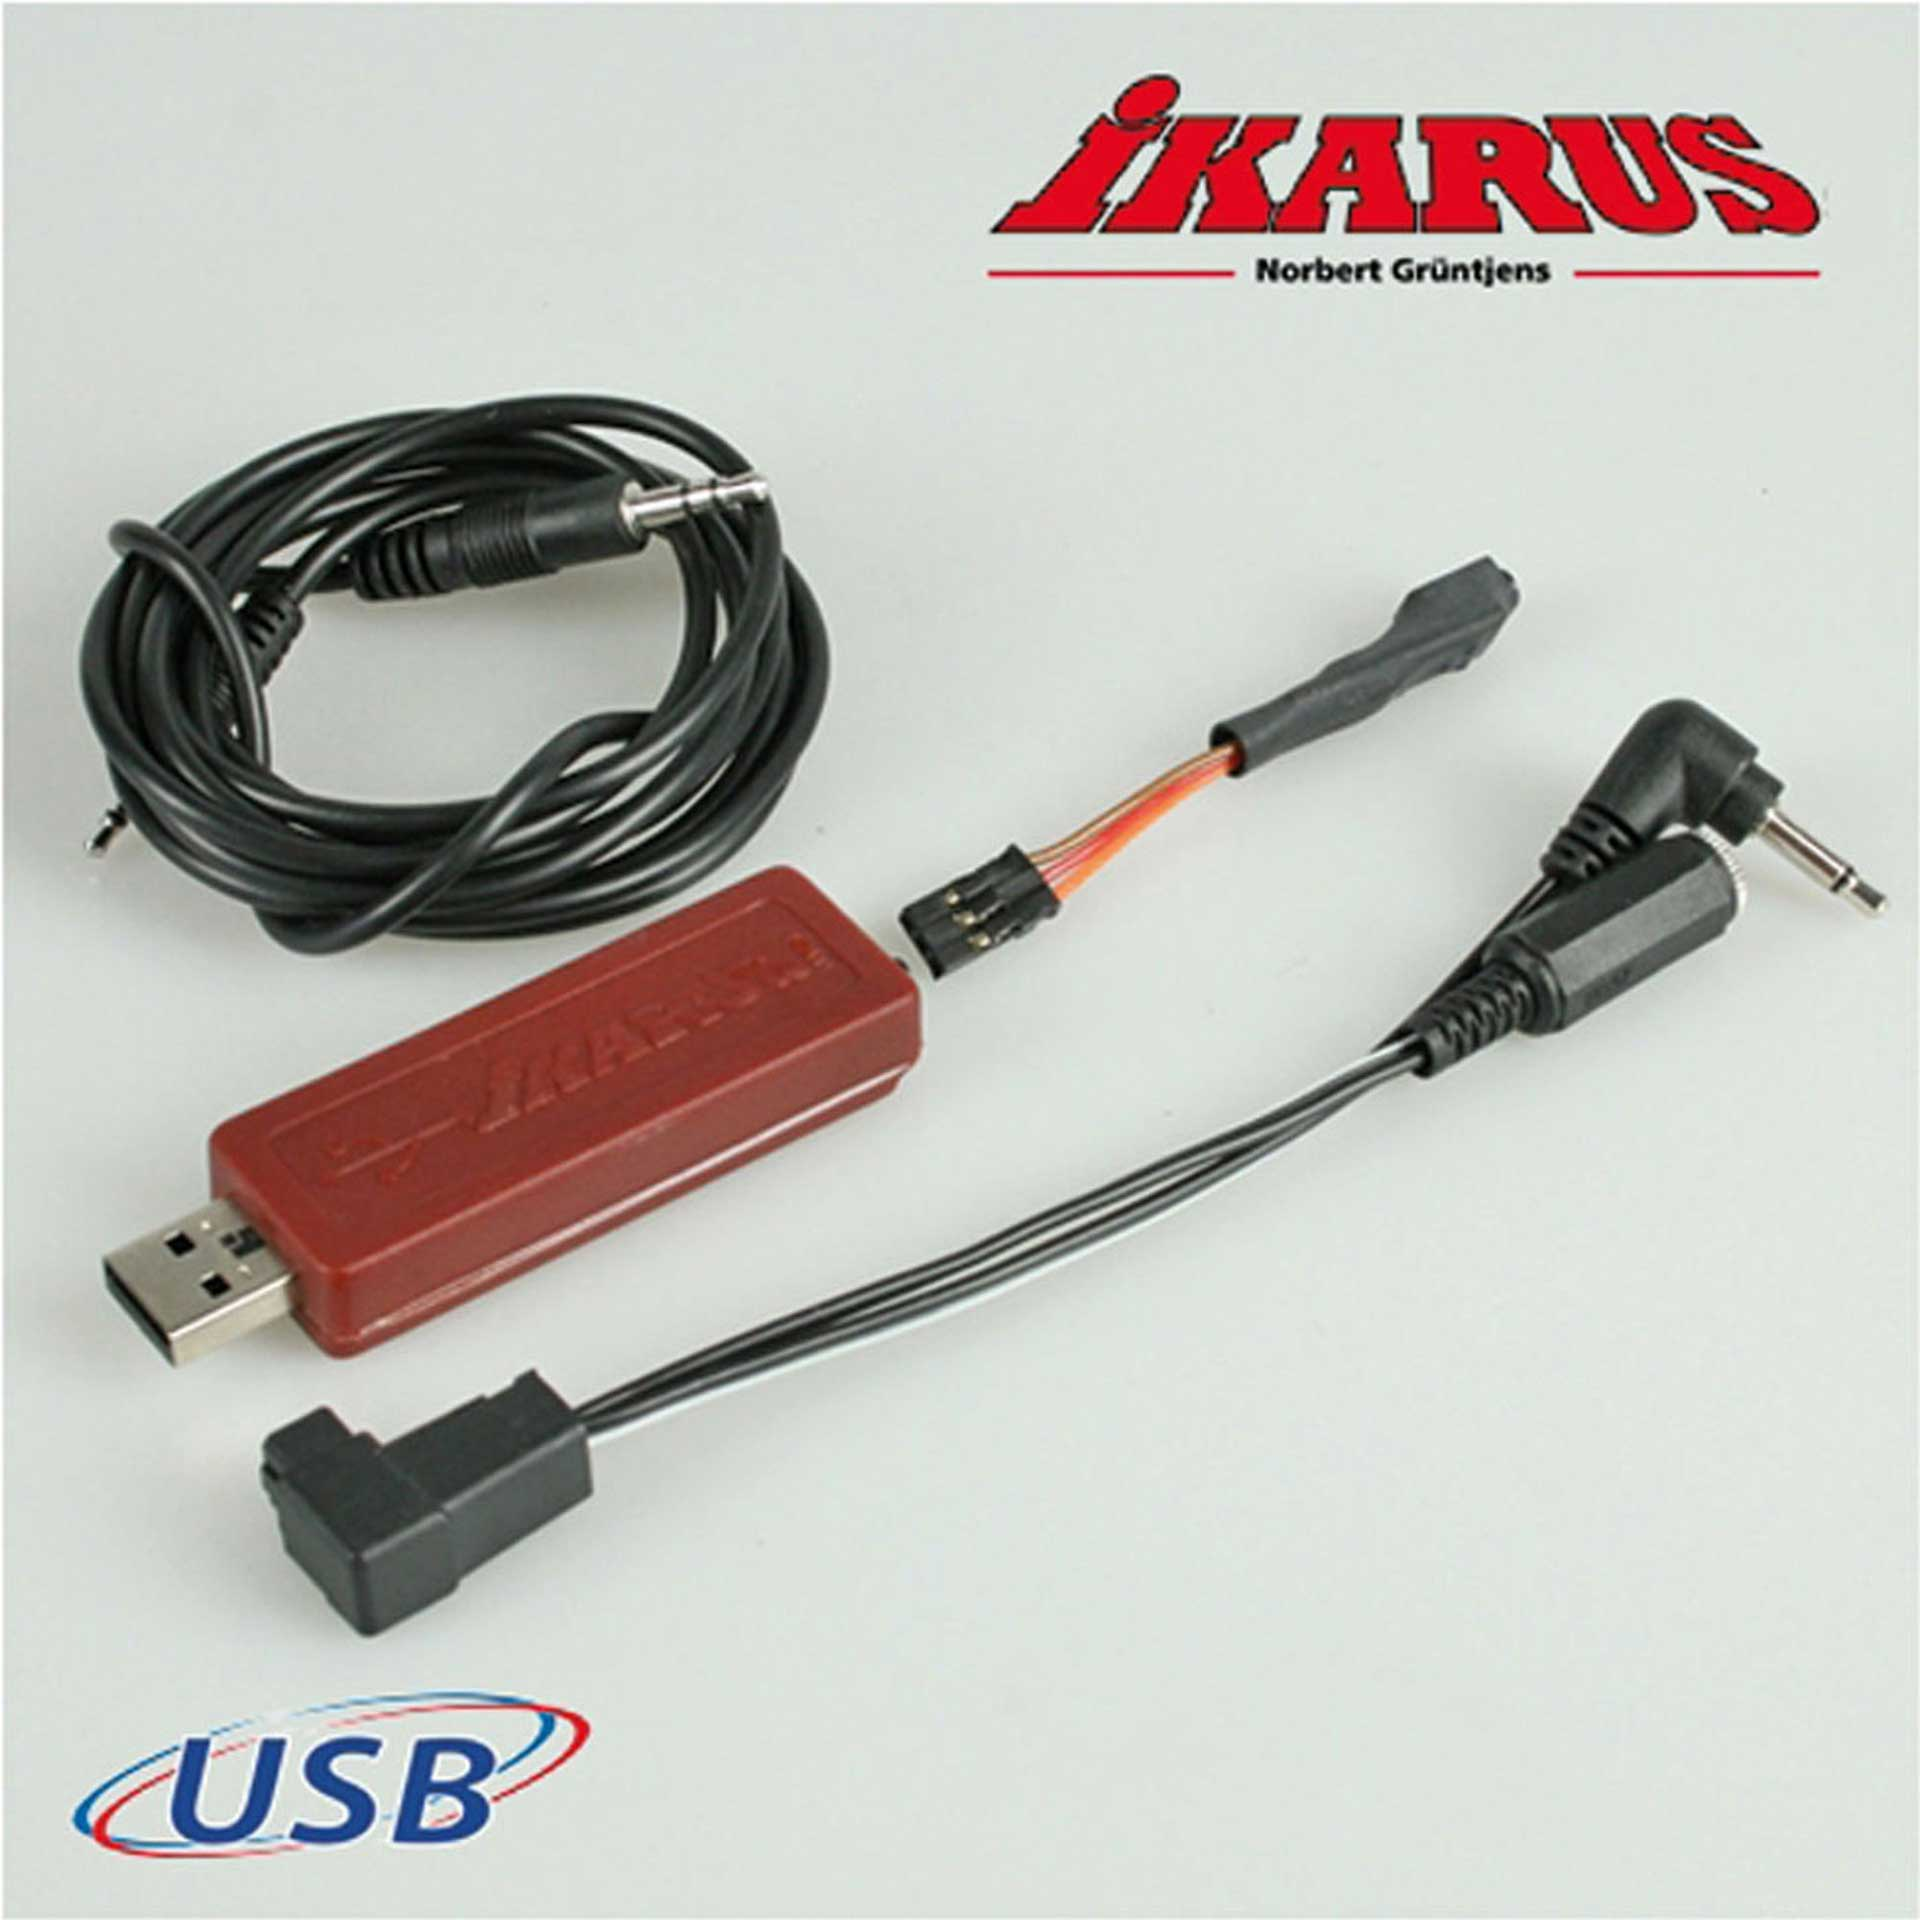 IKARUS USB-INTERFACESET FOR SPECTRUM AND FUTABA TRANSMITTER (WIRED)